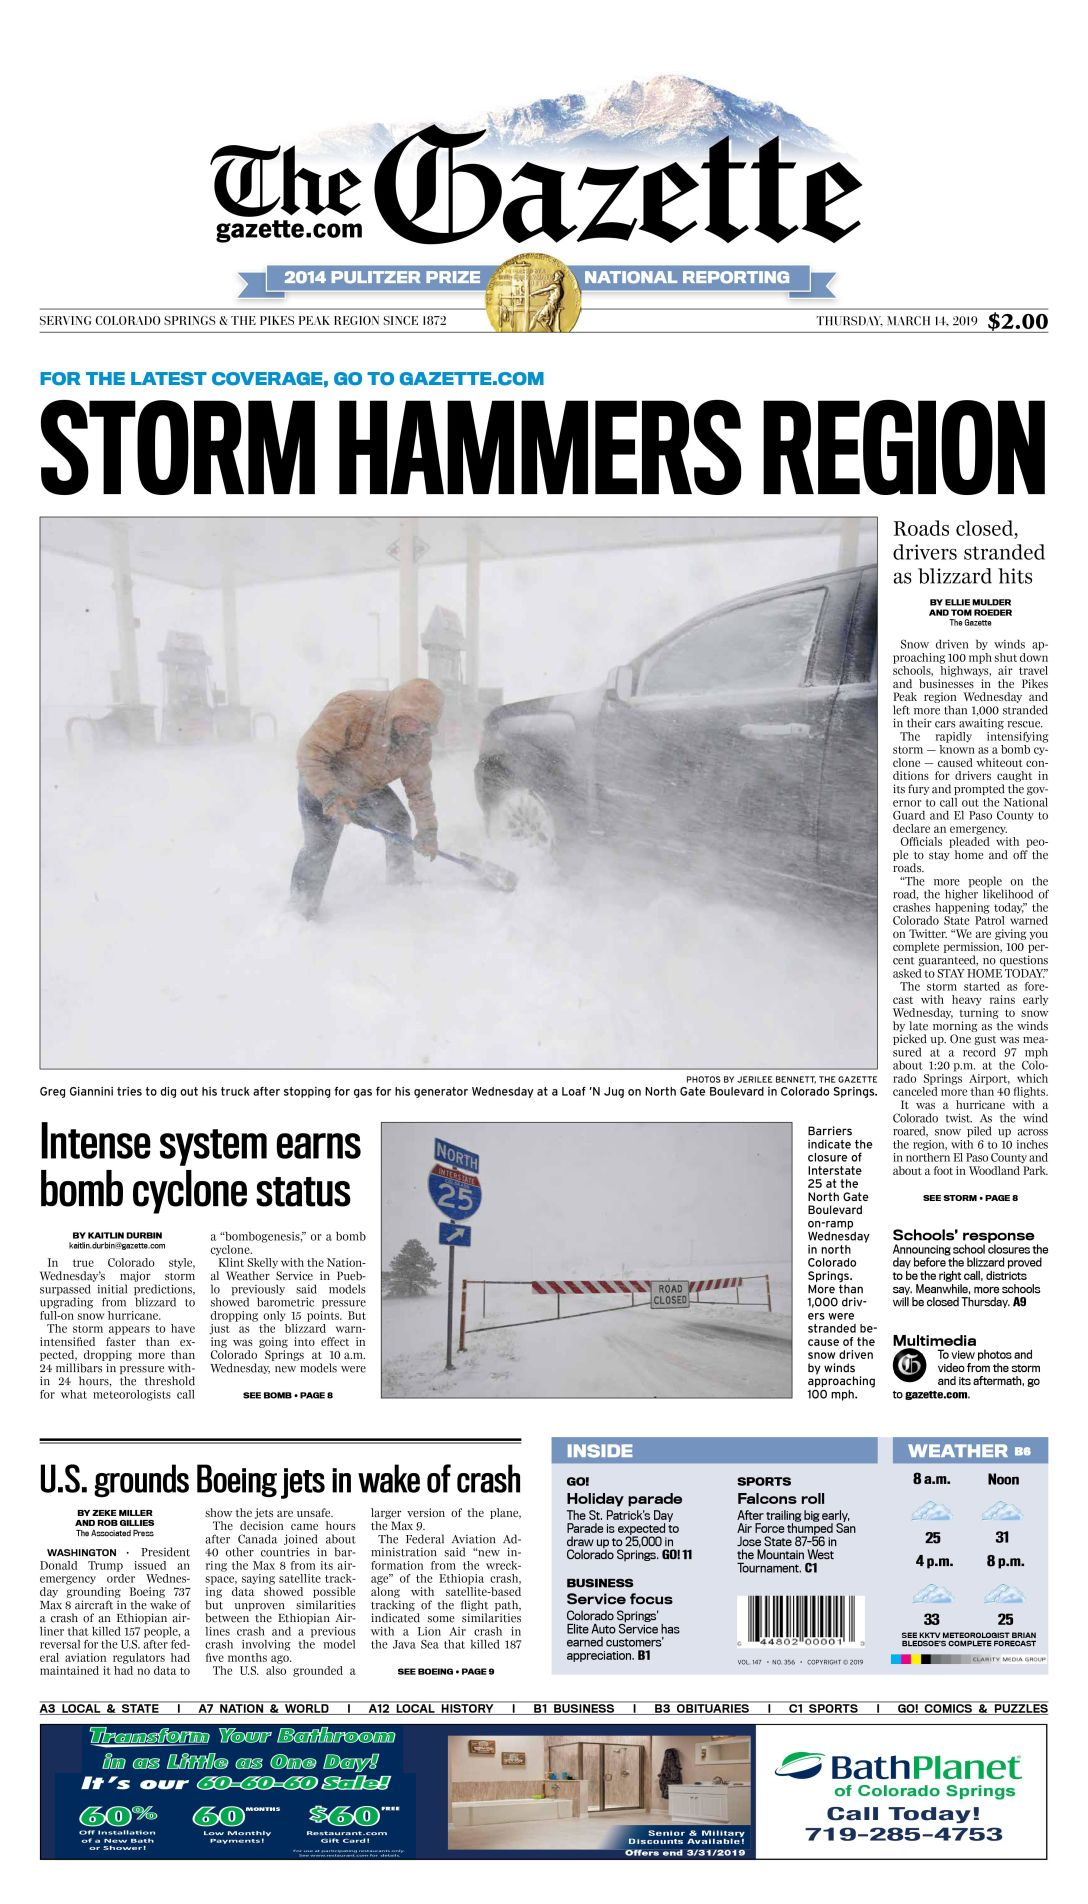 Bomb cyclone front page